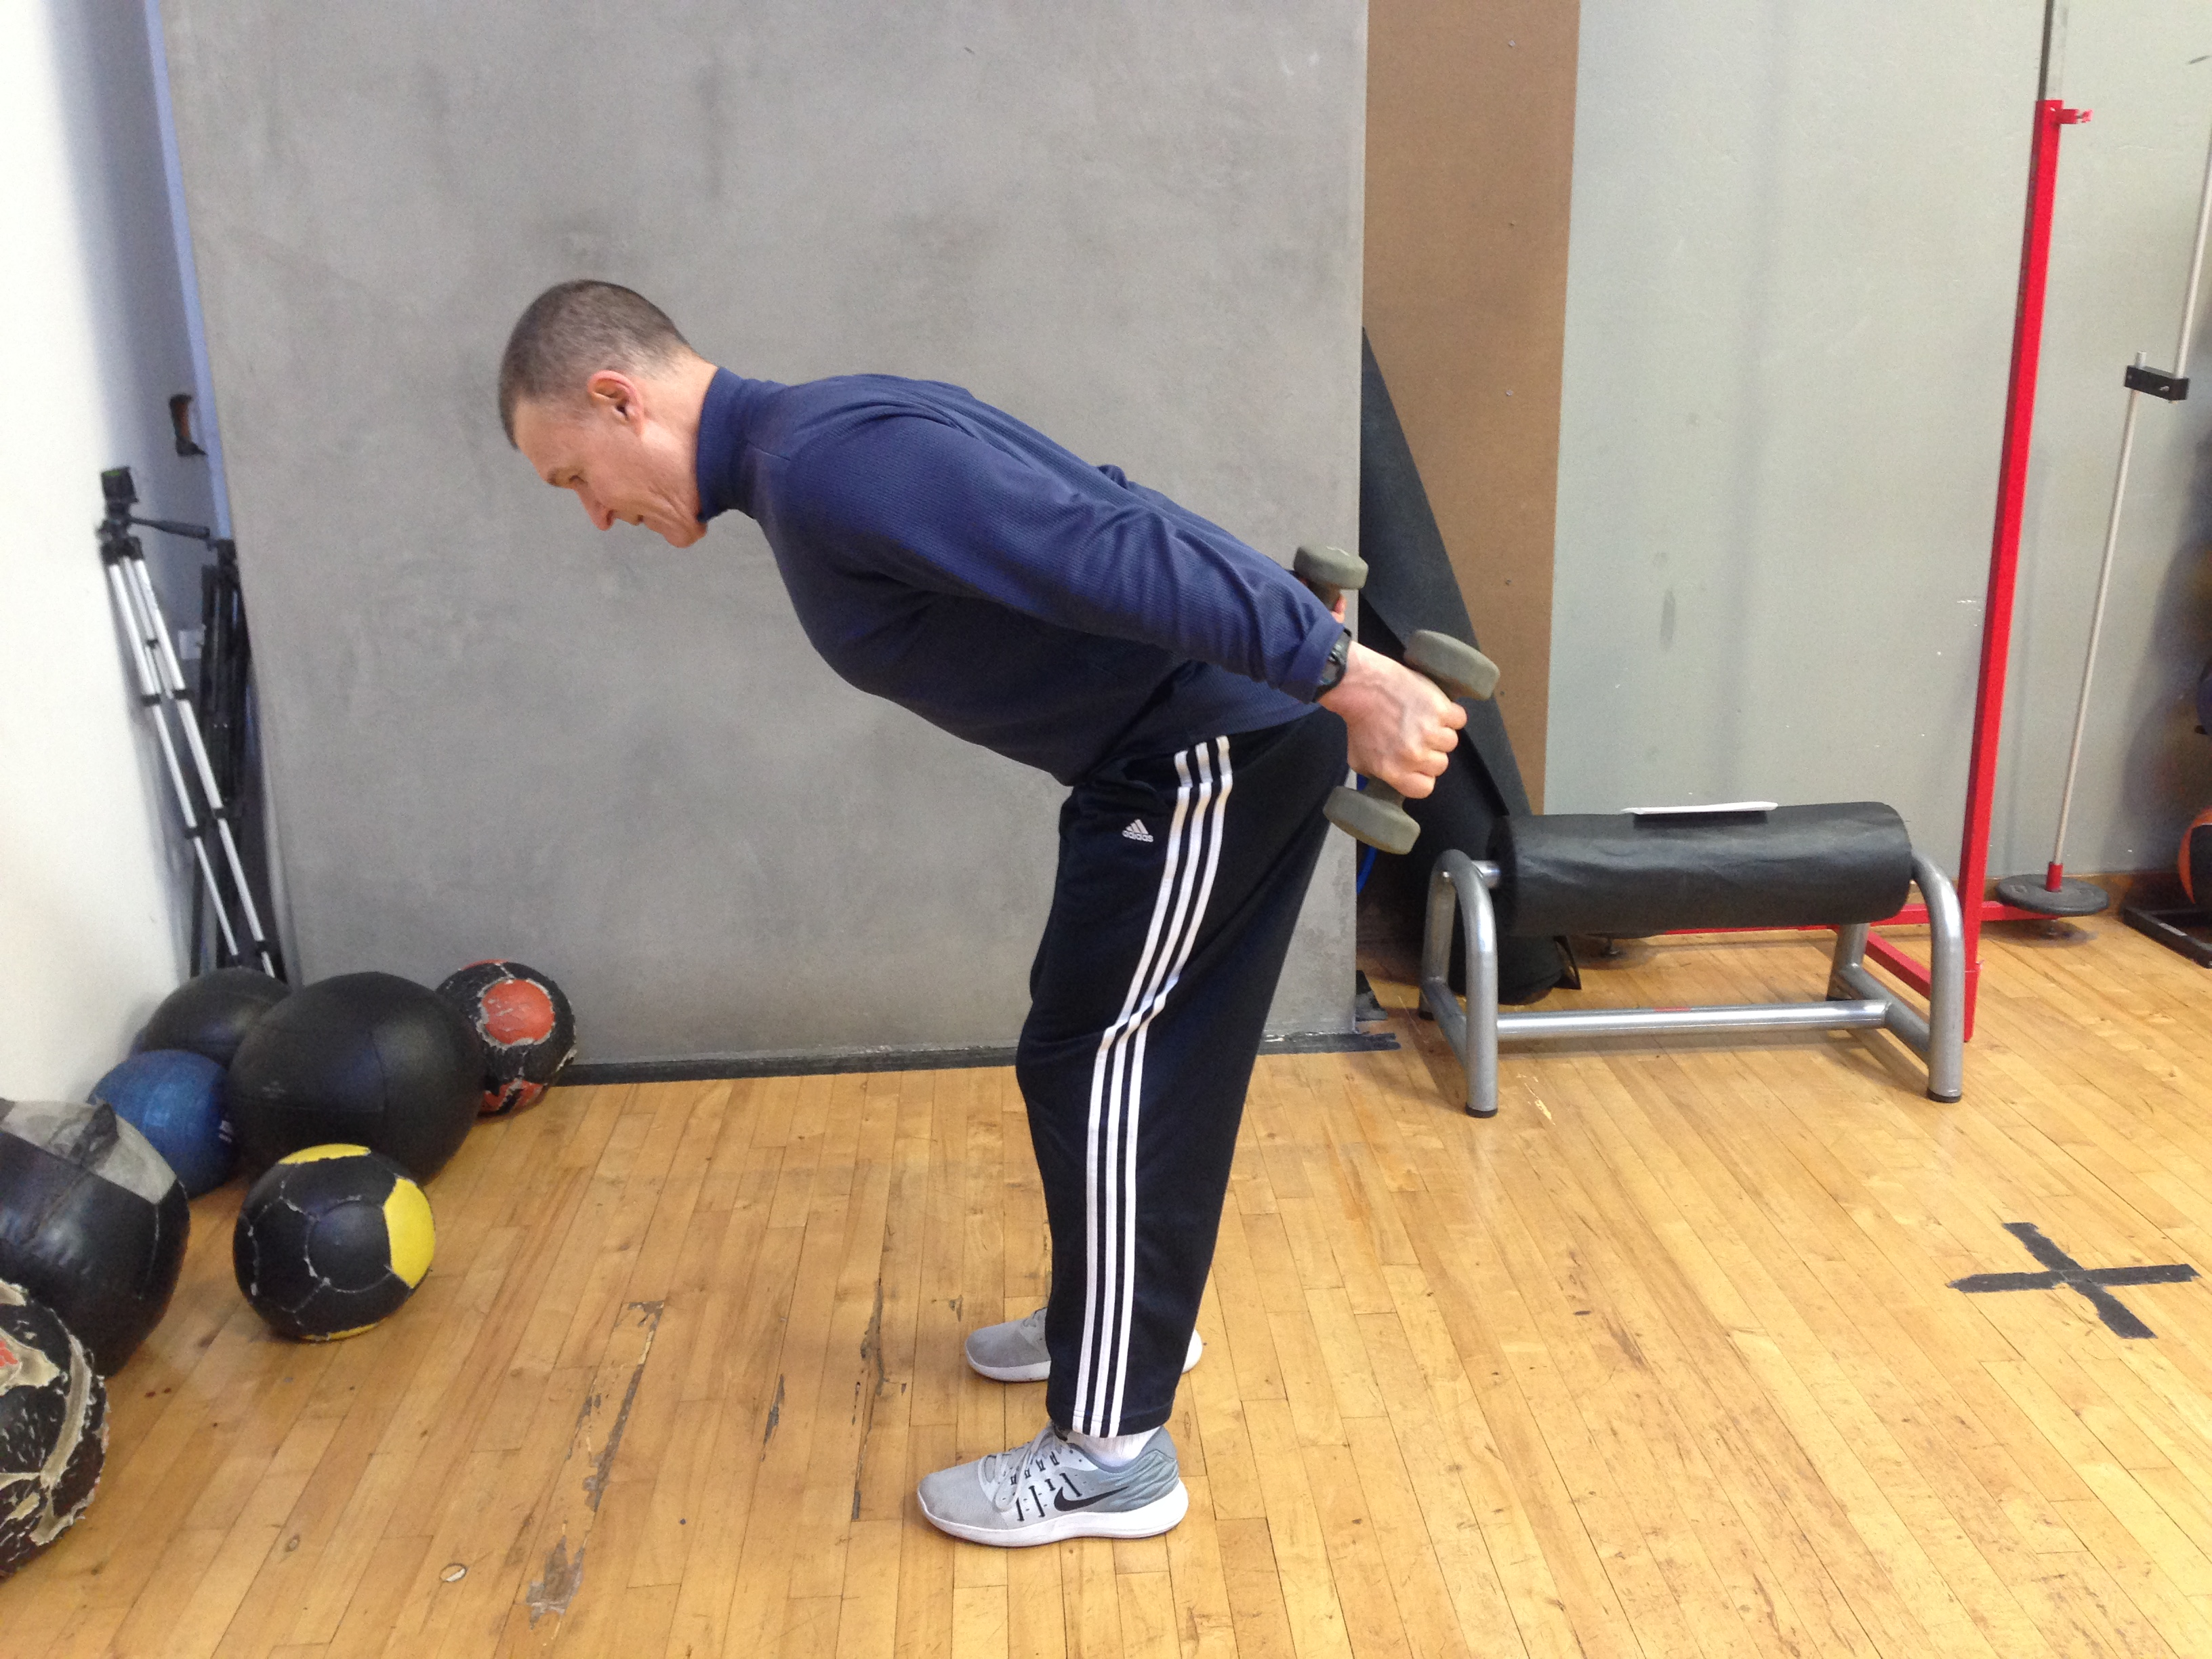 TIME WASTER OF THE MONTH: DUMBBELL TRICEPS KICKBACK